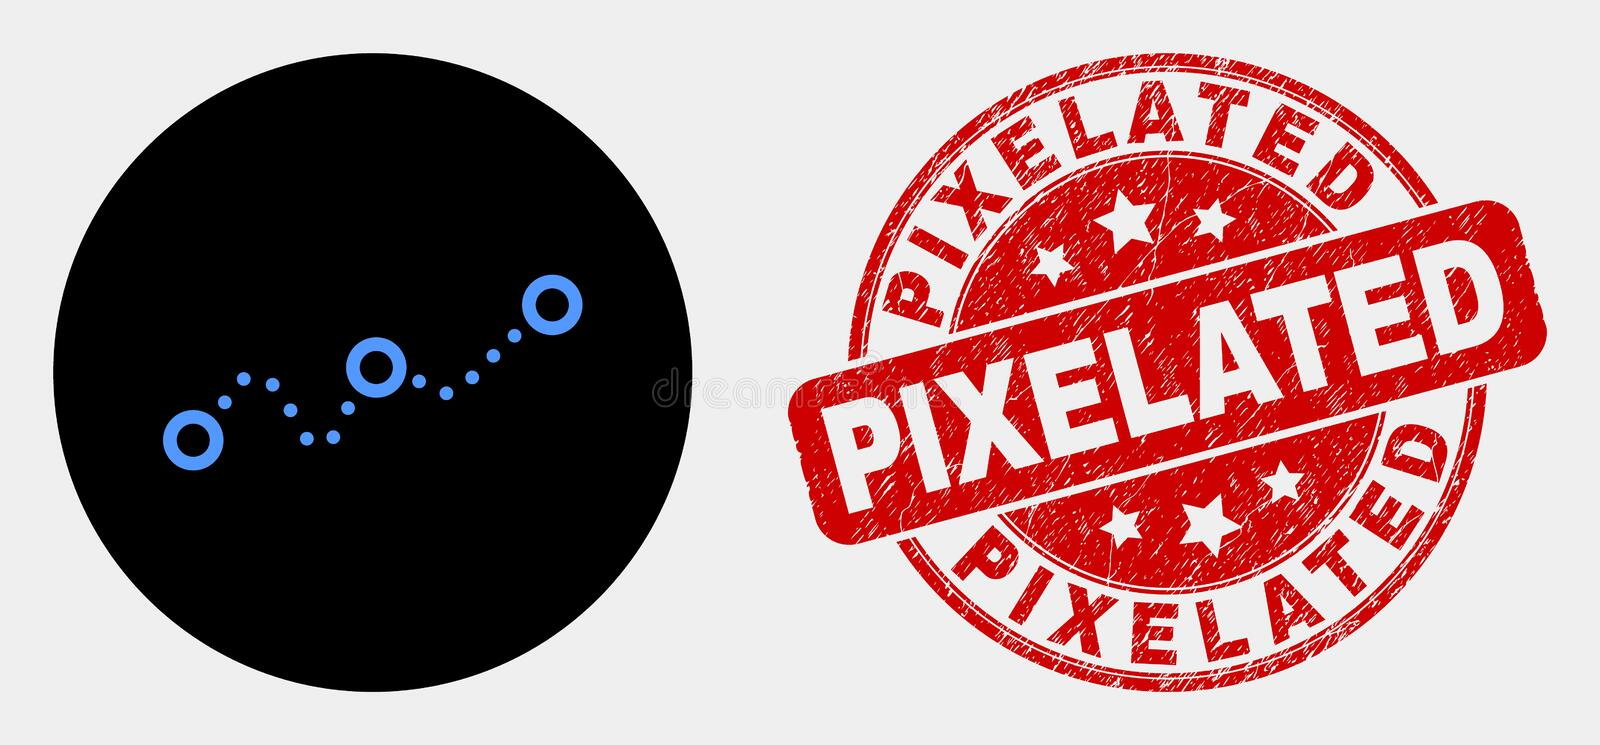 Vector Dotted Chart Icon and Grunge Pixelated Seal stock illustration